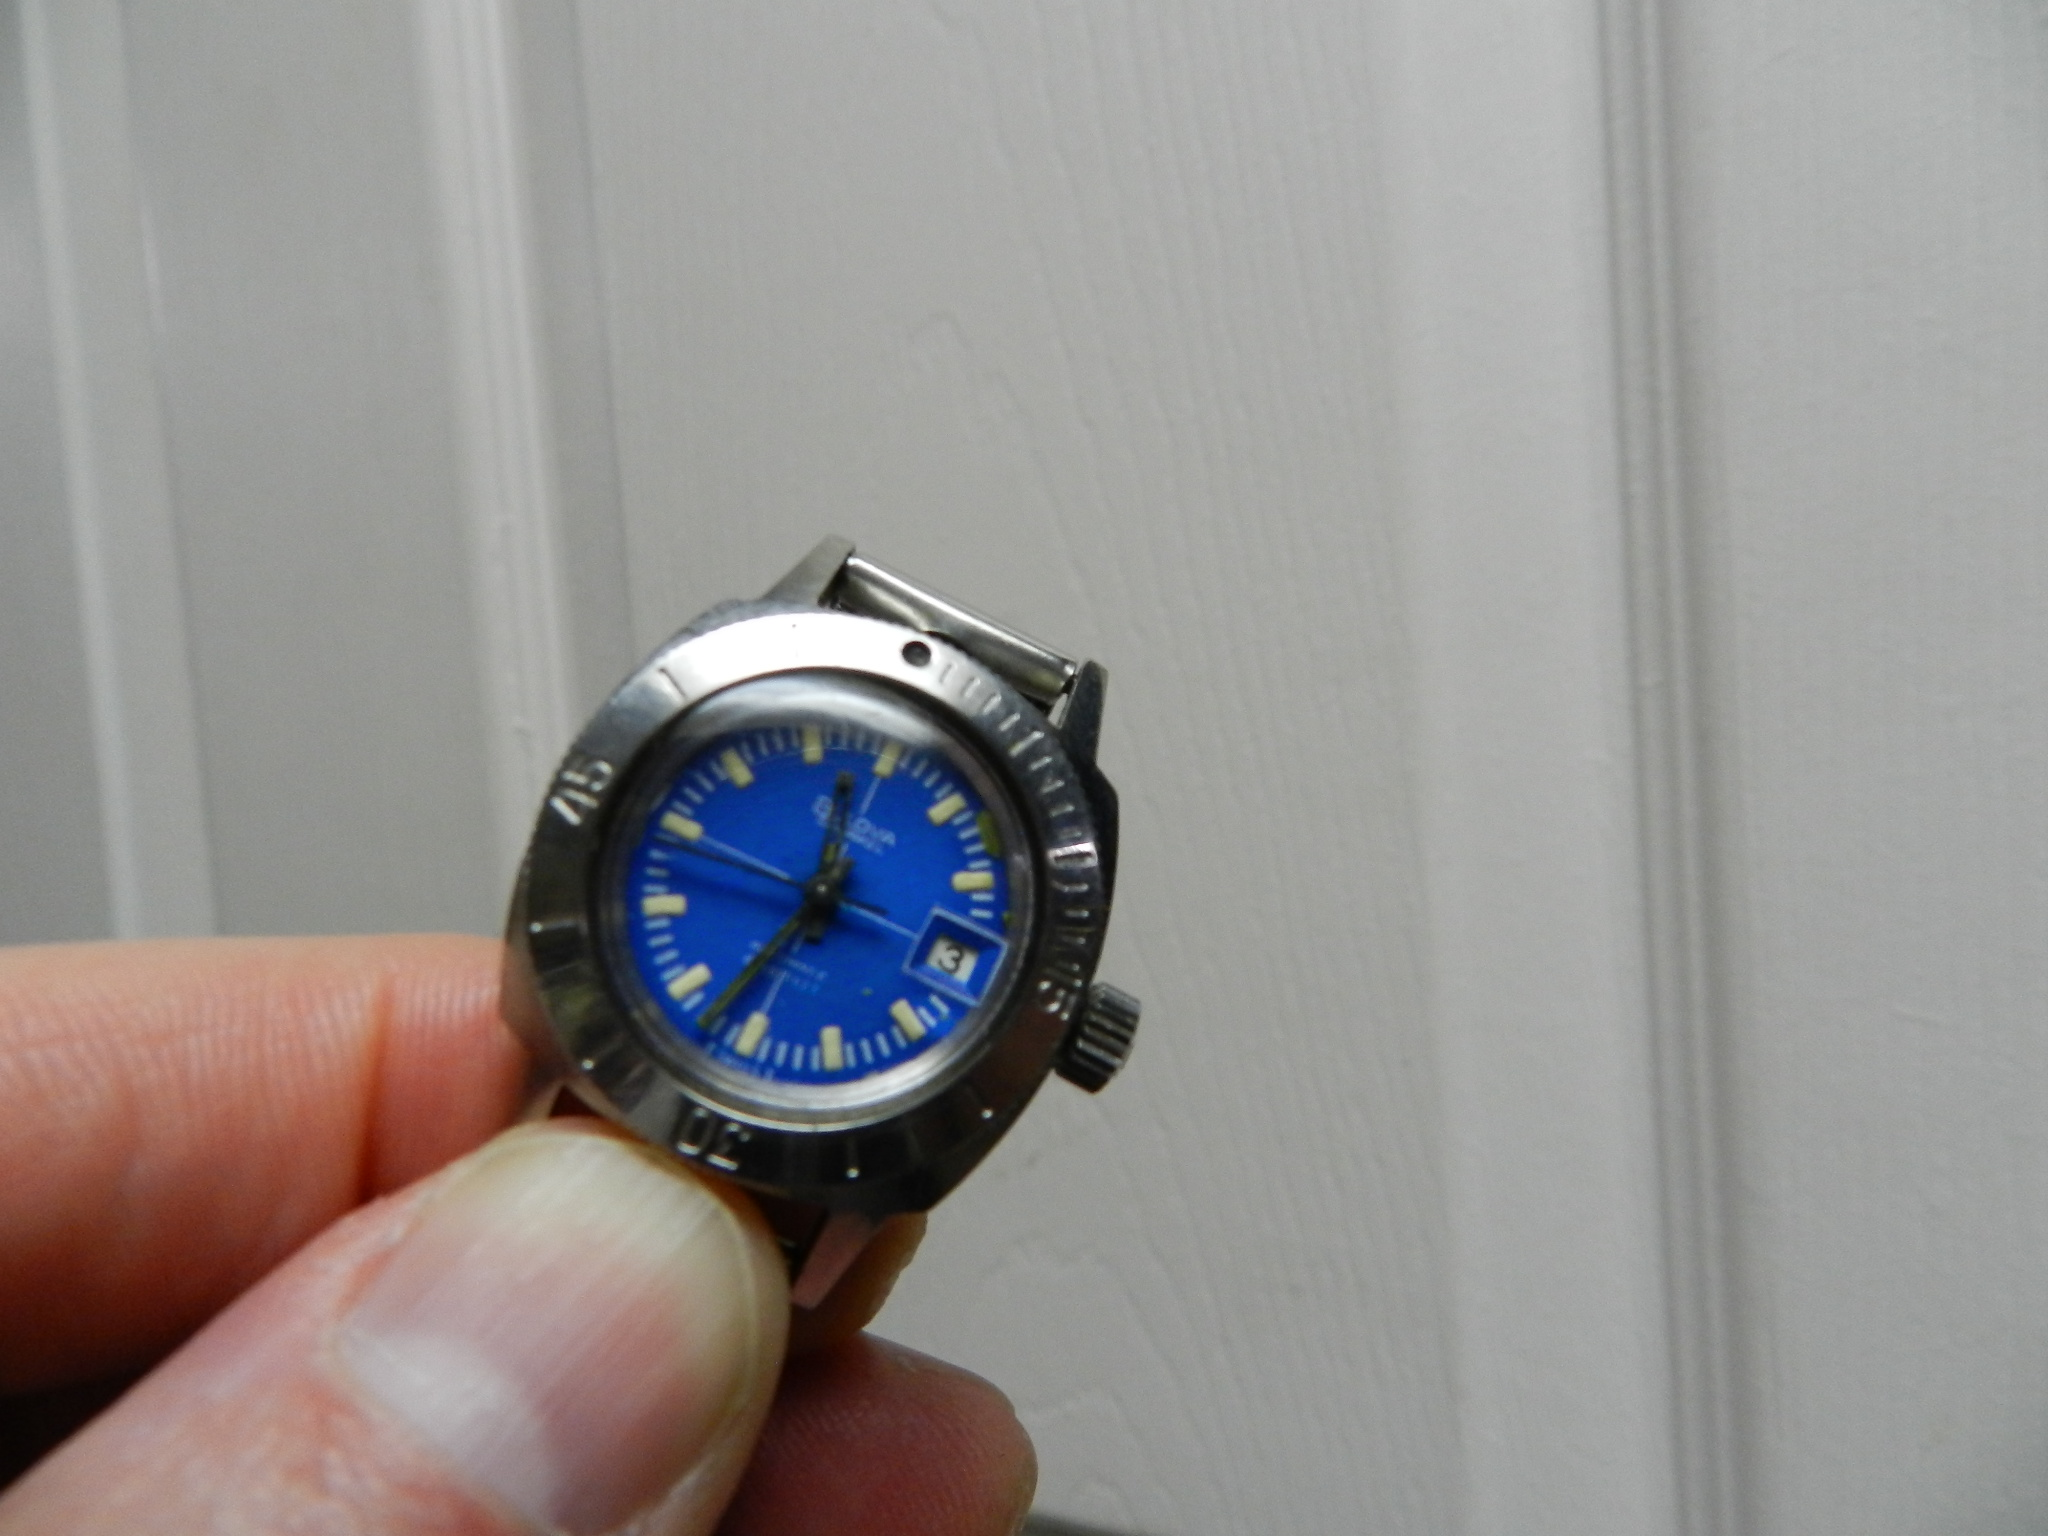 $69 - Ladies Vintage Bulova Snorkel Auto 666 Diver Watch